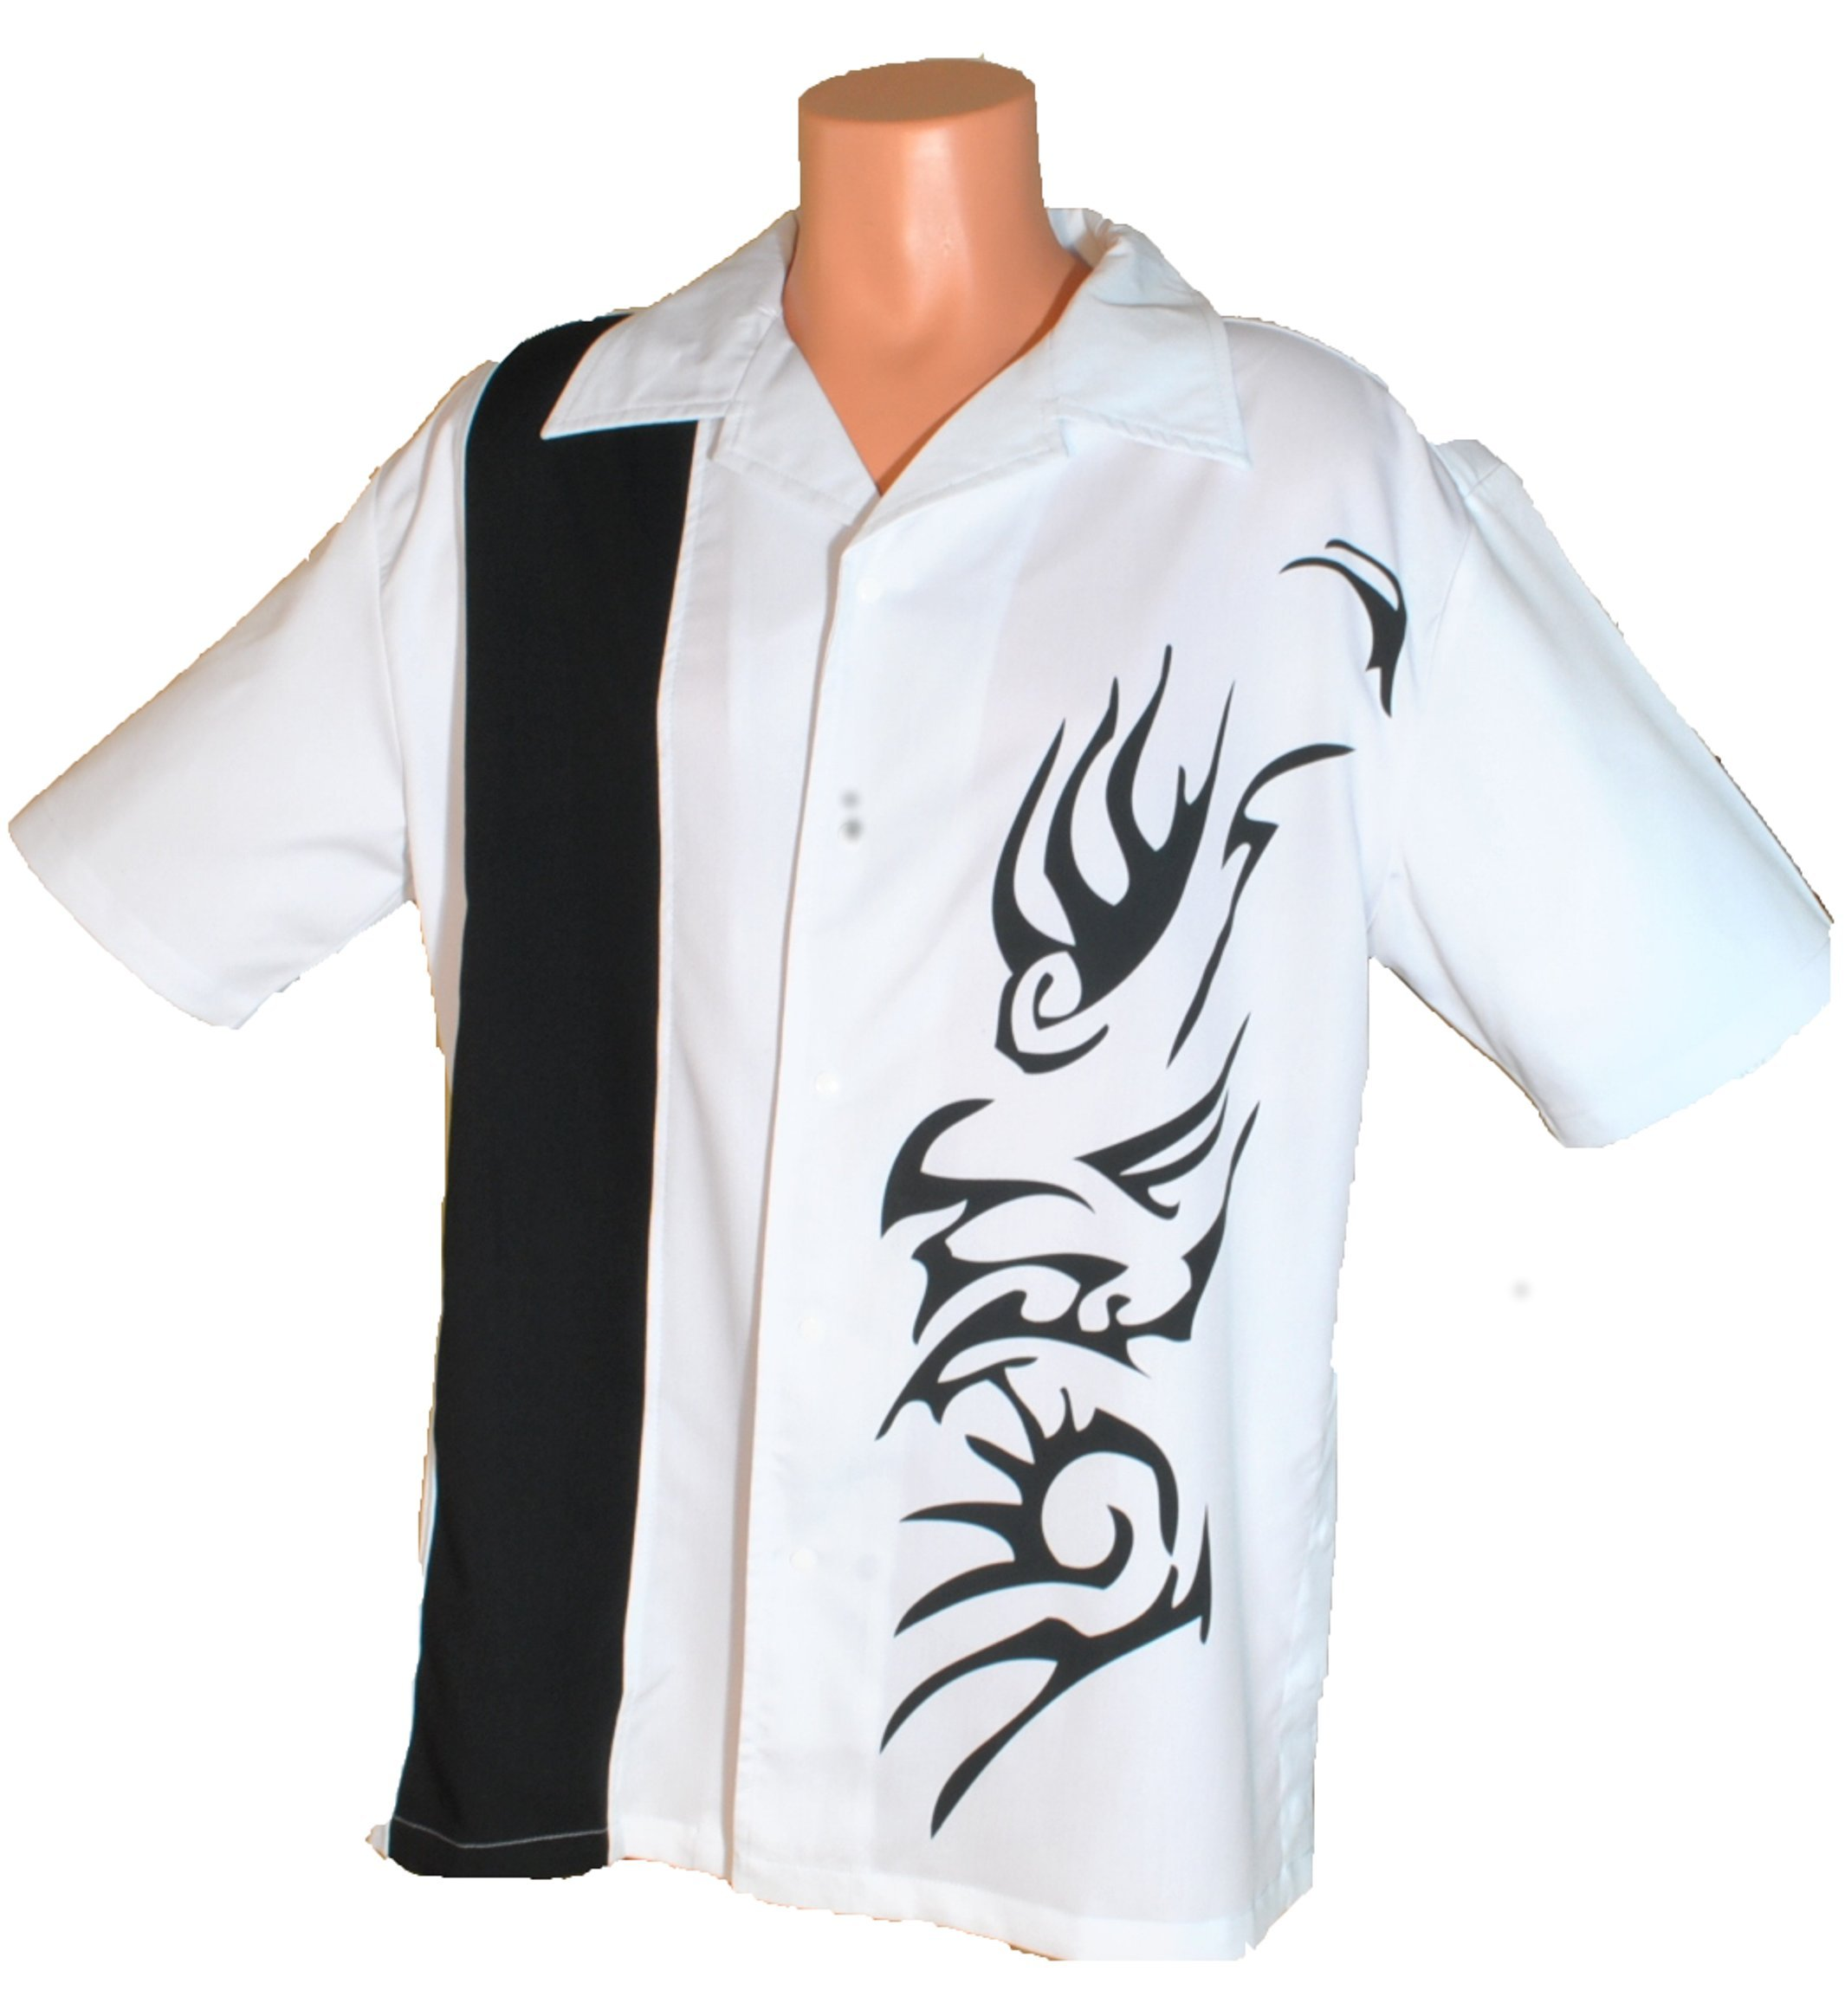 Mens New Concealed Weapons Shirt with Snaps. Size Medium.